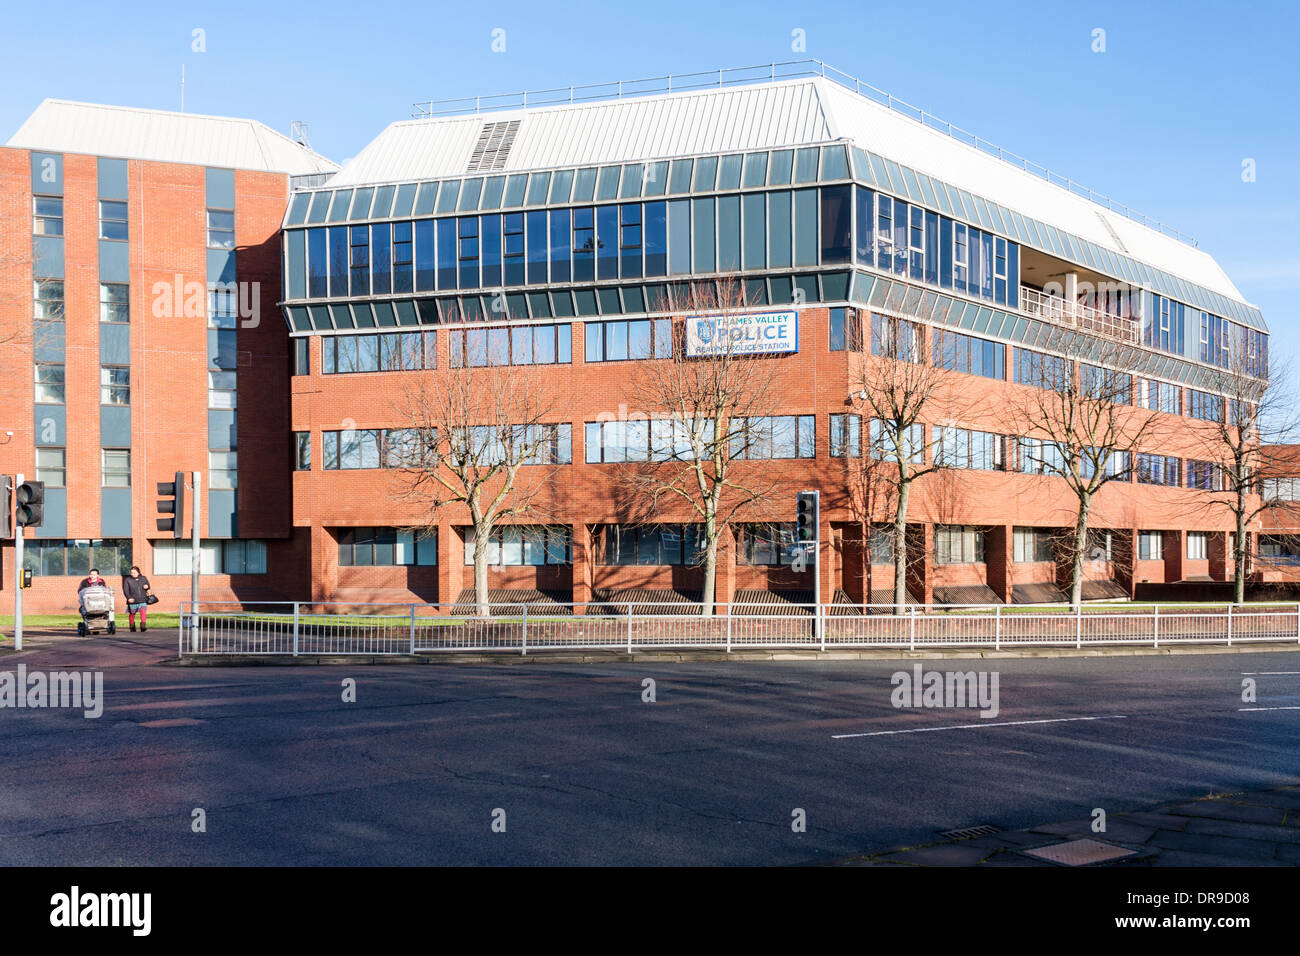 Reading Police Station, Thames Valley Police, Reading, Berkshire, England, GB, UK. - Stock Image